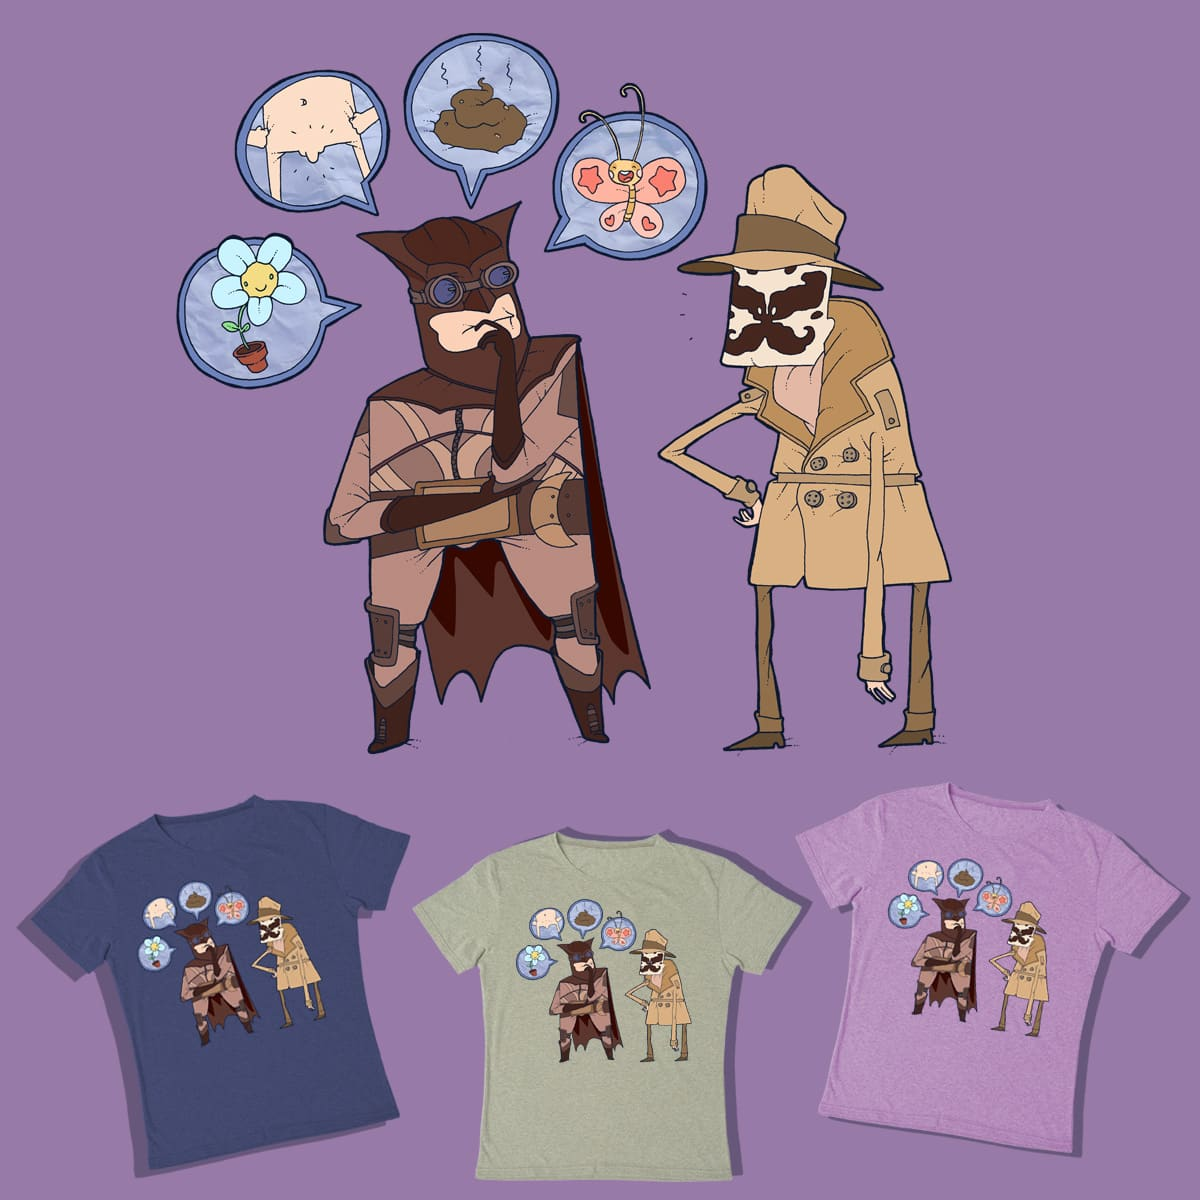 Rorschach Test by lost-angel-less on Threadless